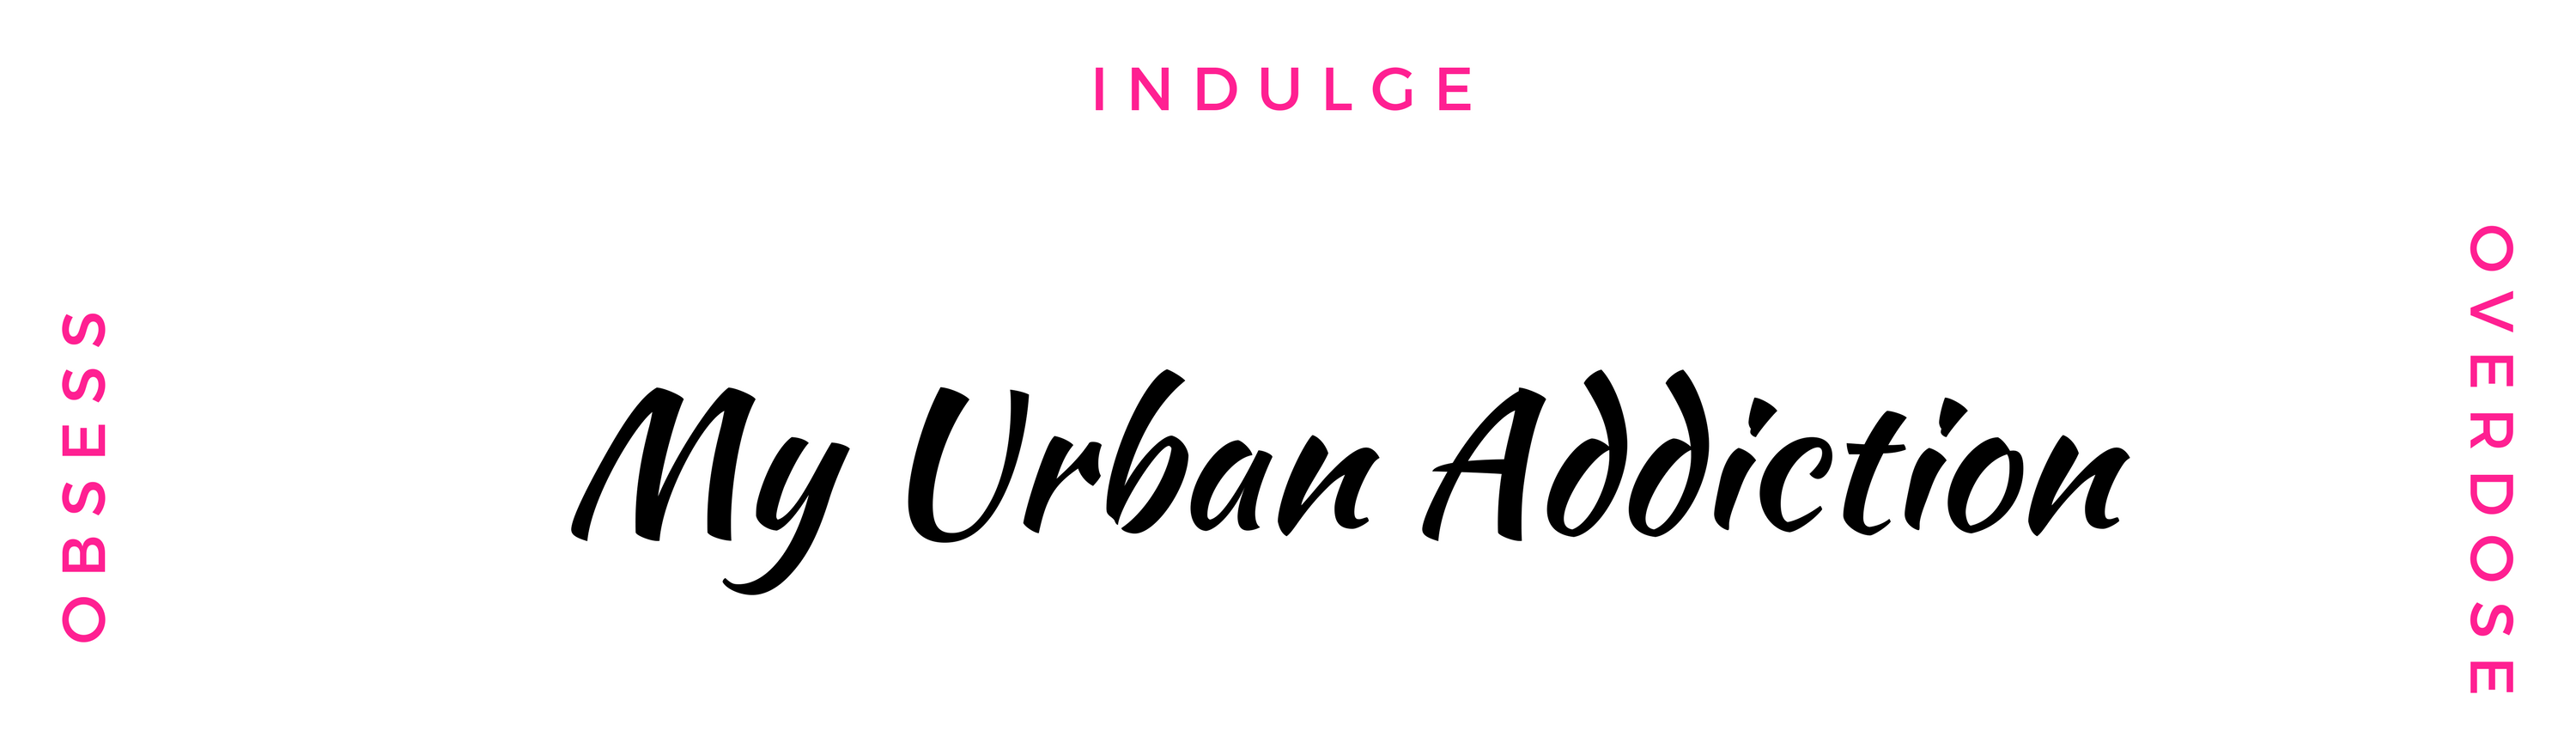 My Urban Addiction